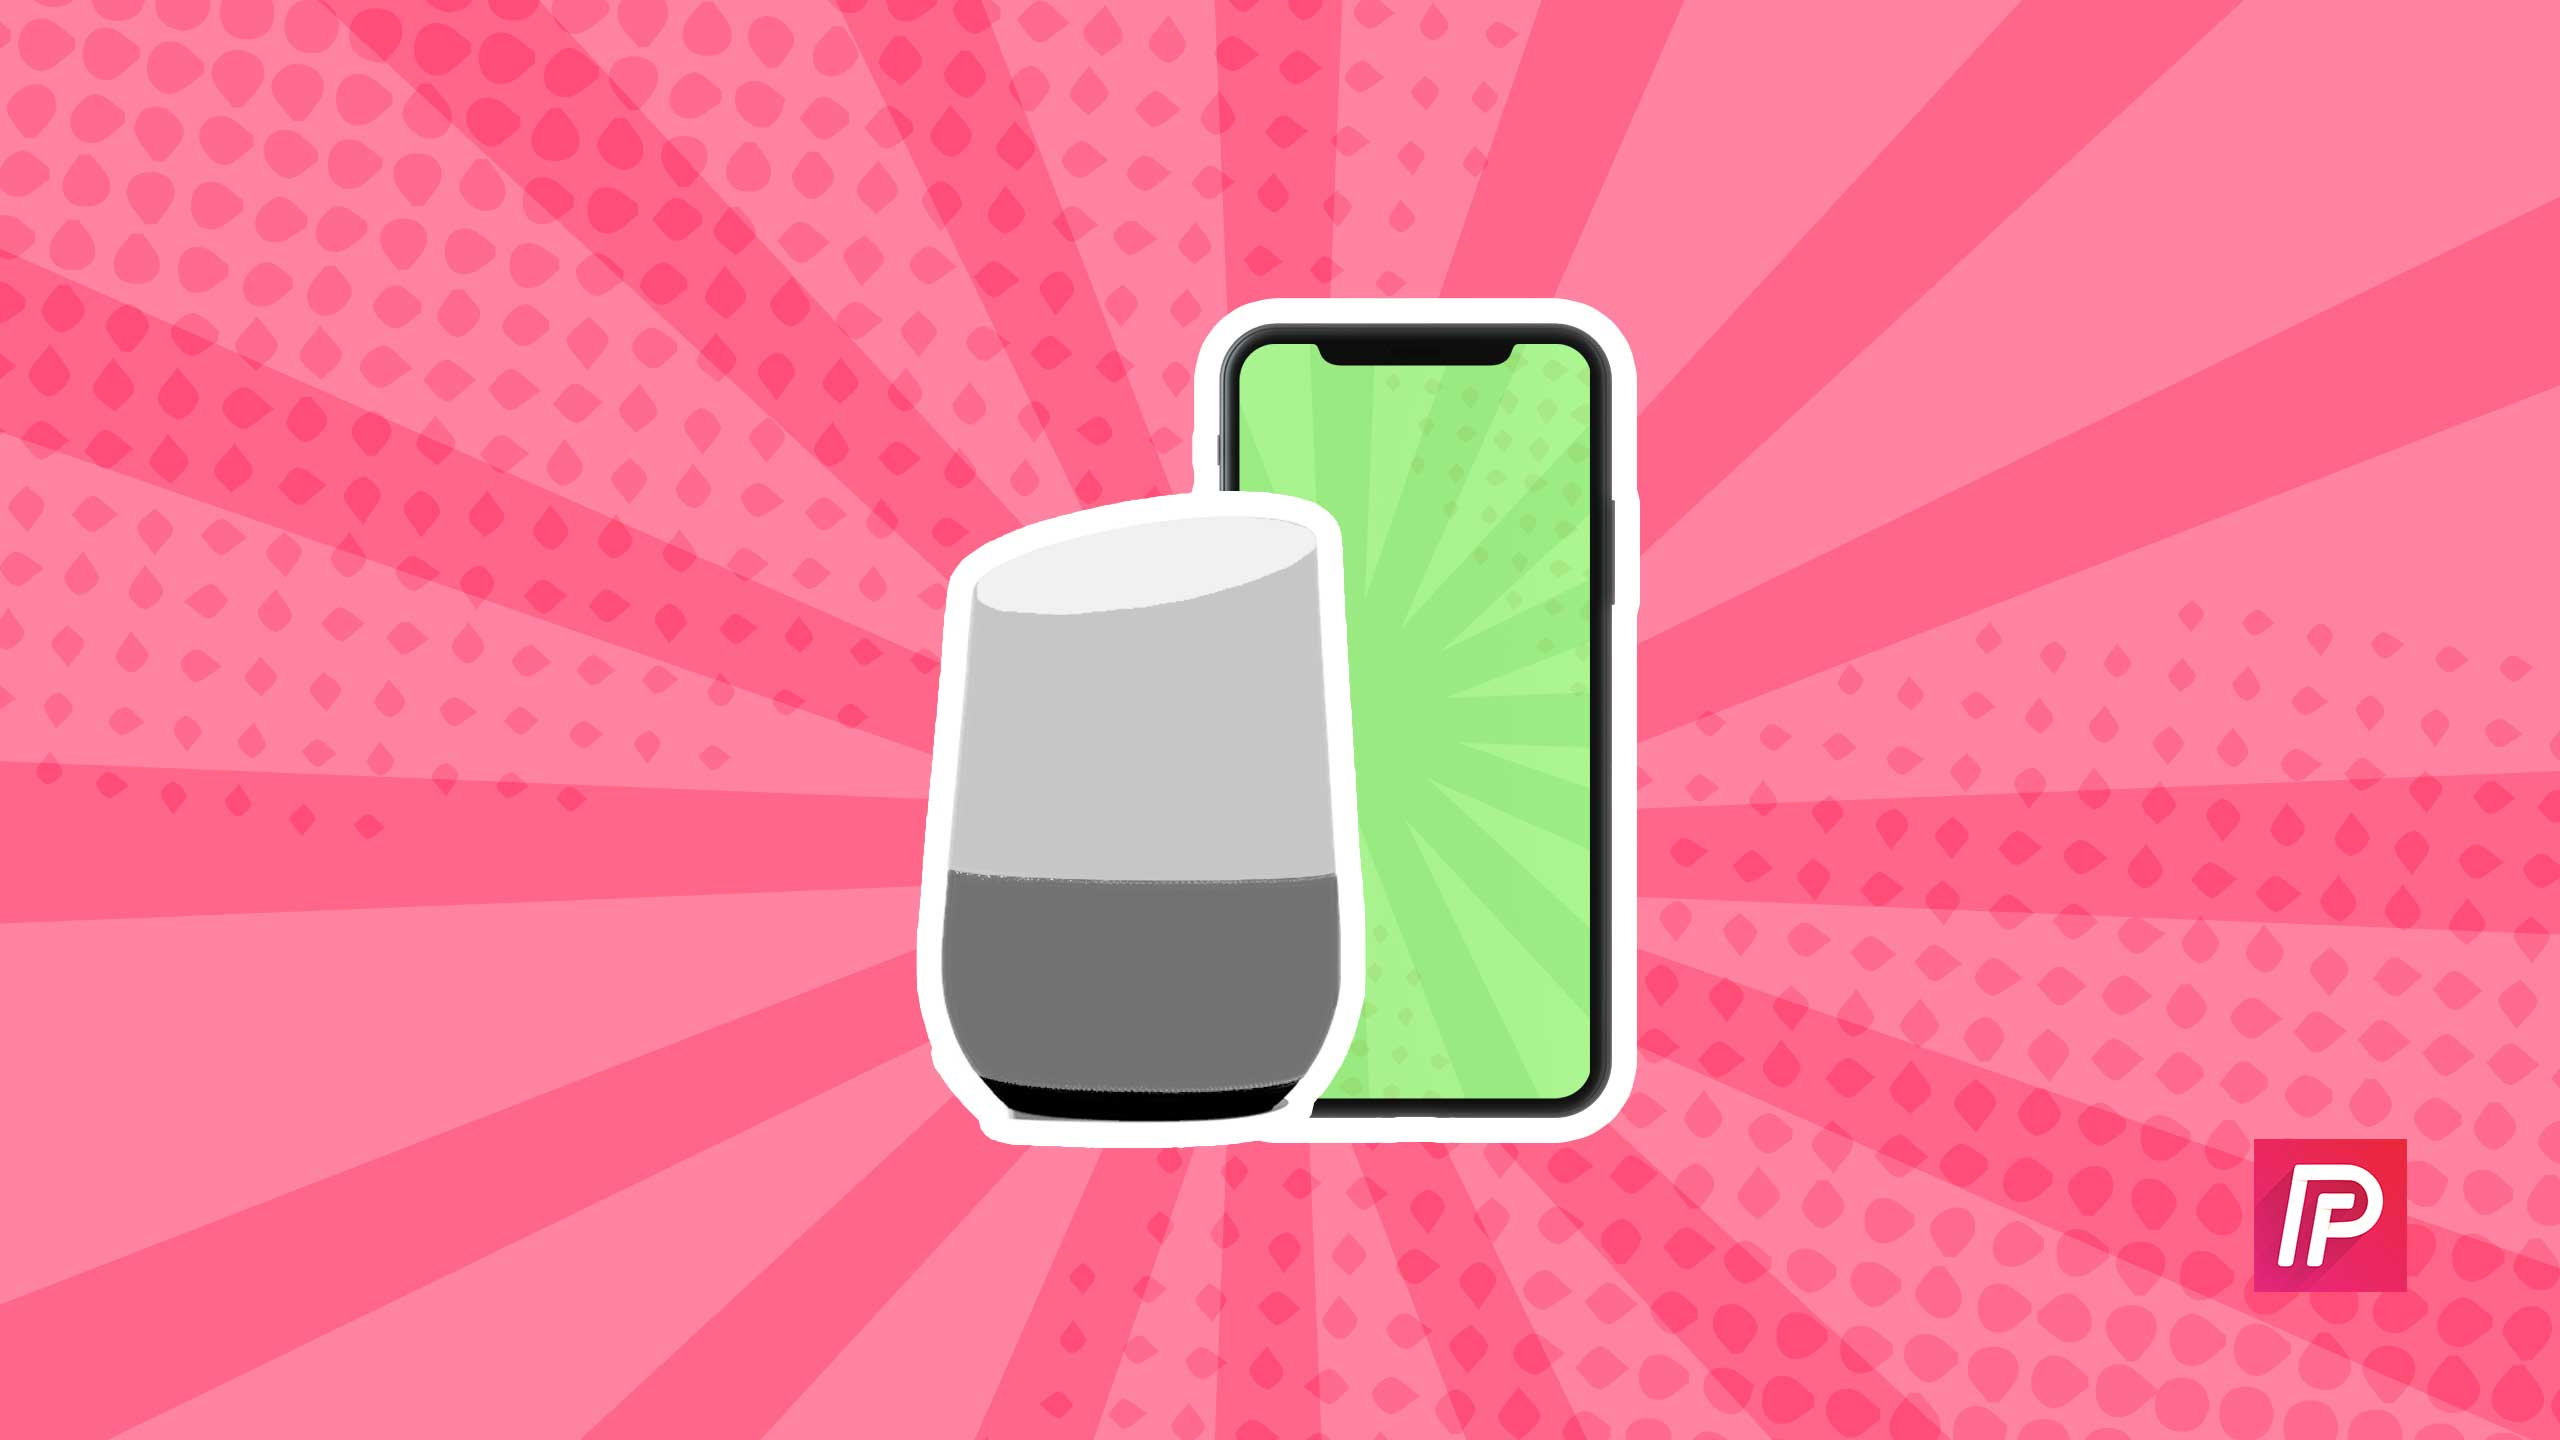 How To Connect Google Home To Your Iphone The Easy Guide